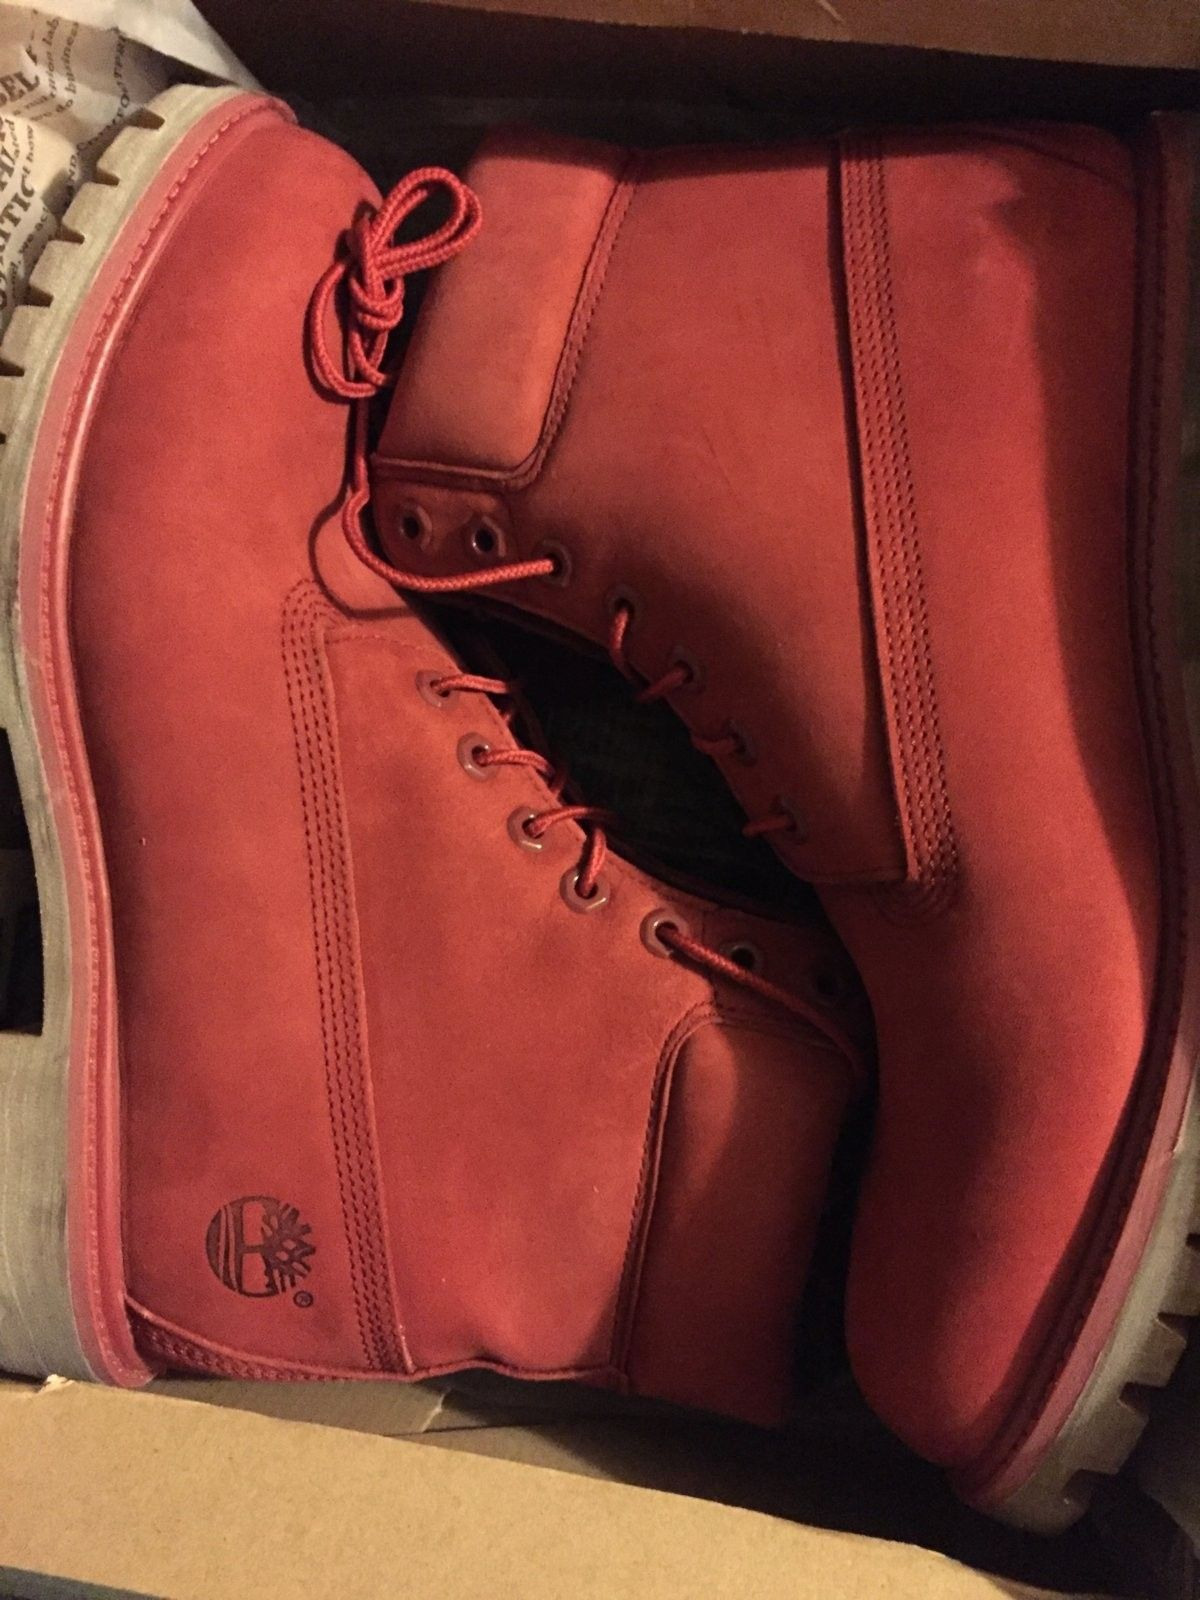 Any other fans of the Timberland 6 inch boot? - image.jpeg